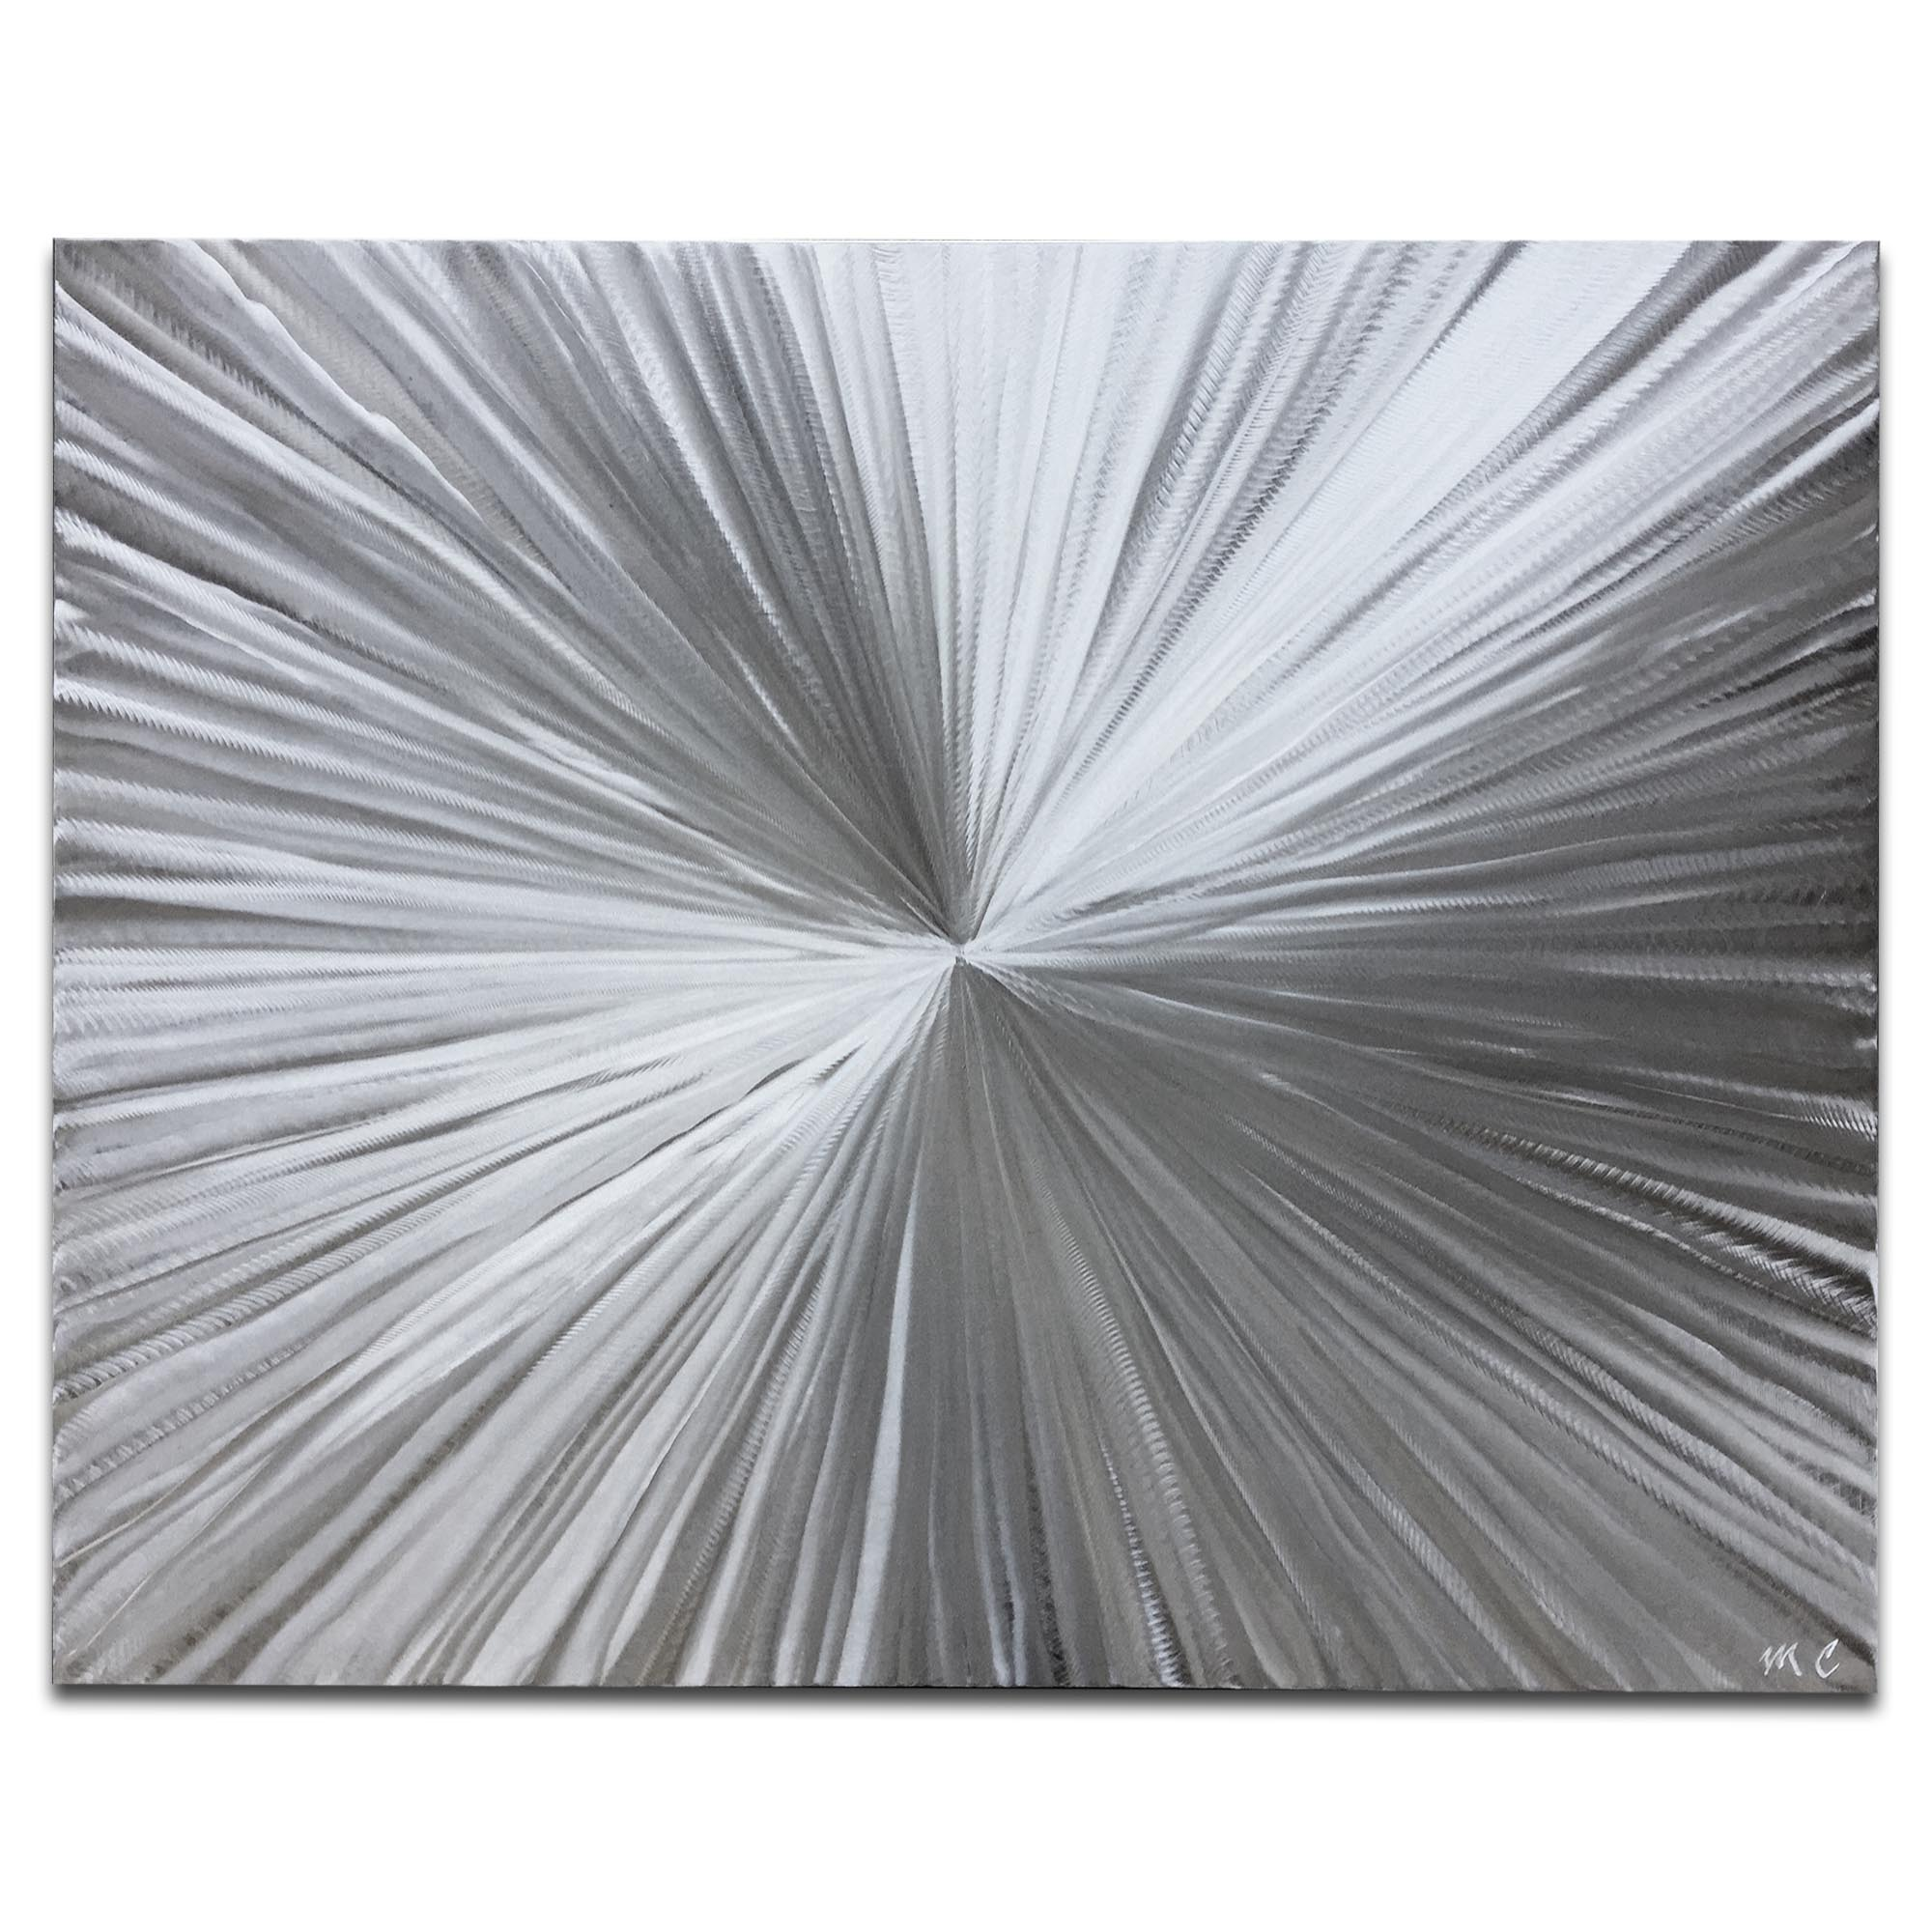 Bursting by Helena Martin - Sunburst Metal Art on Natural Aluminum